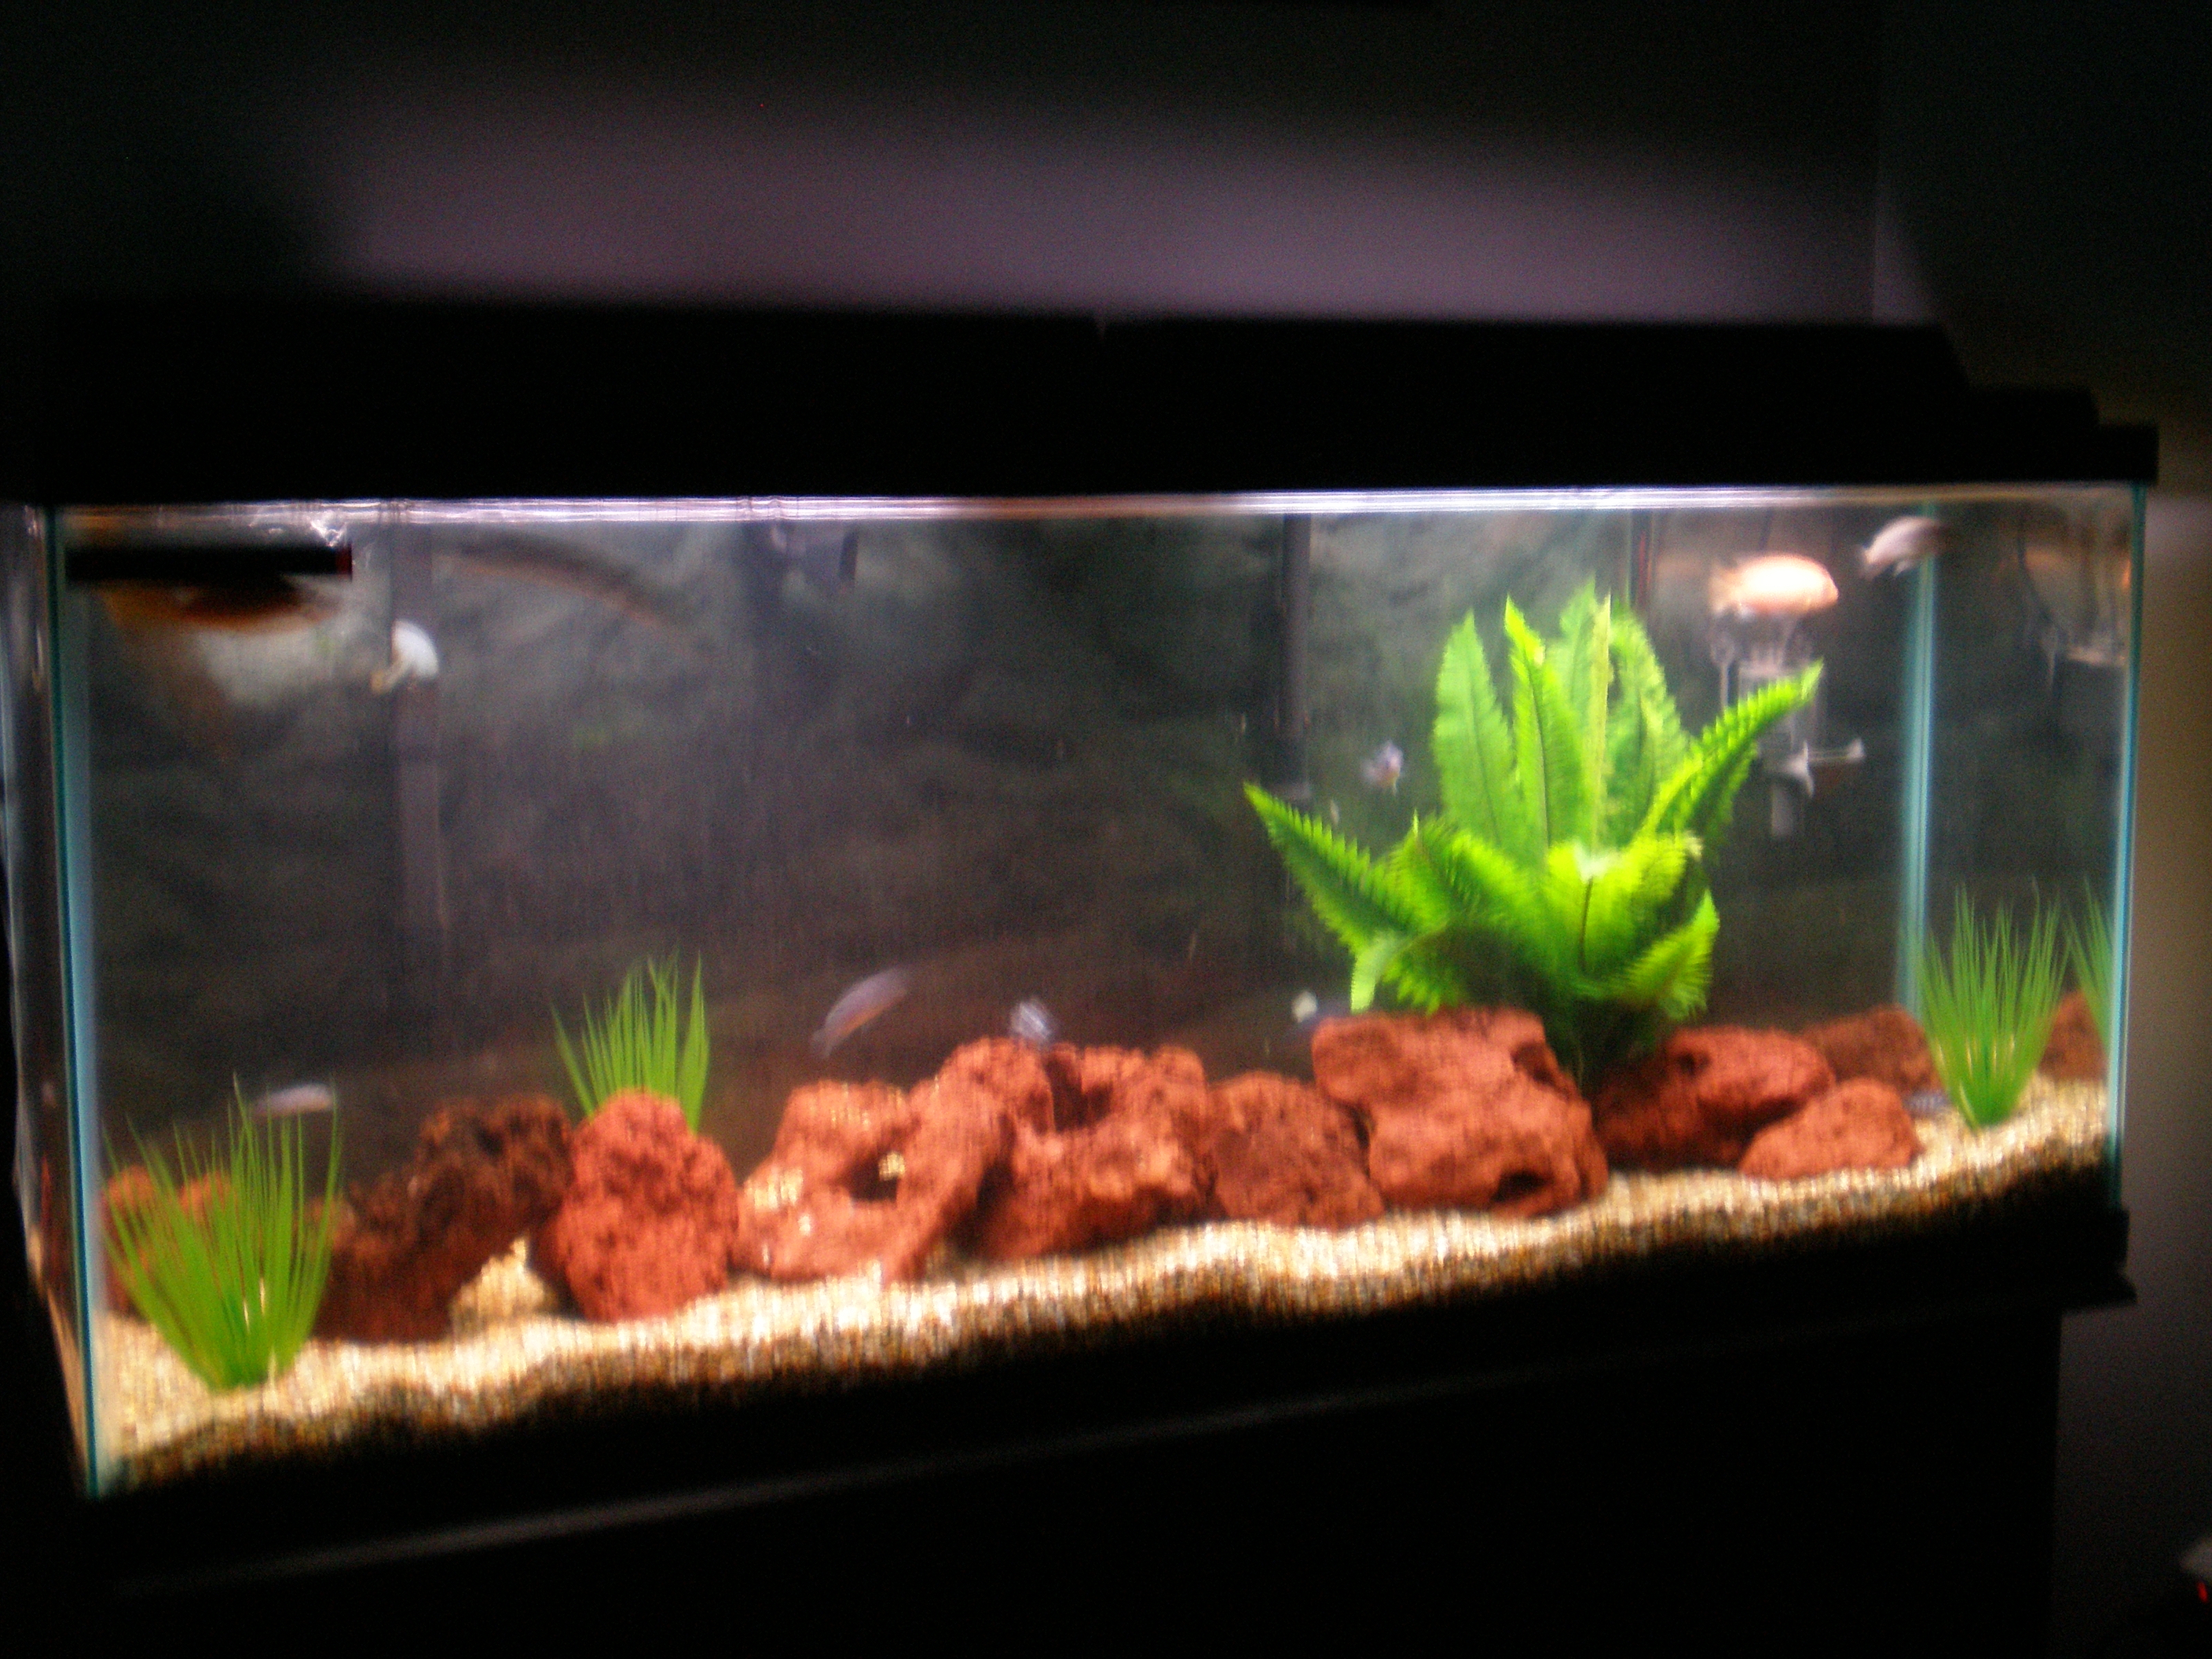 55 gallon fish tank in litres fish tank pauls 55 gallon for How many gallons in a fish tank calculator